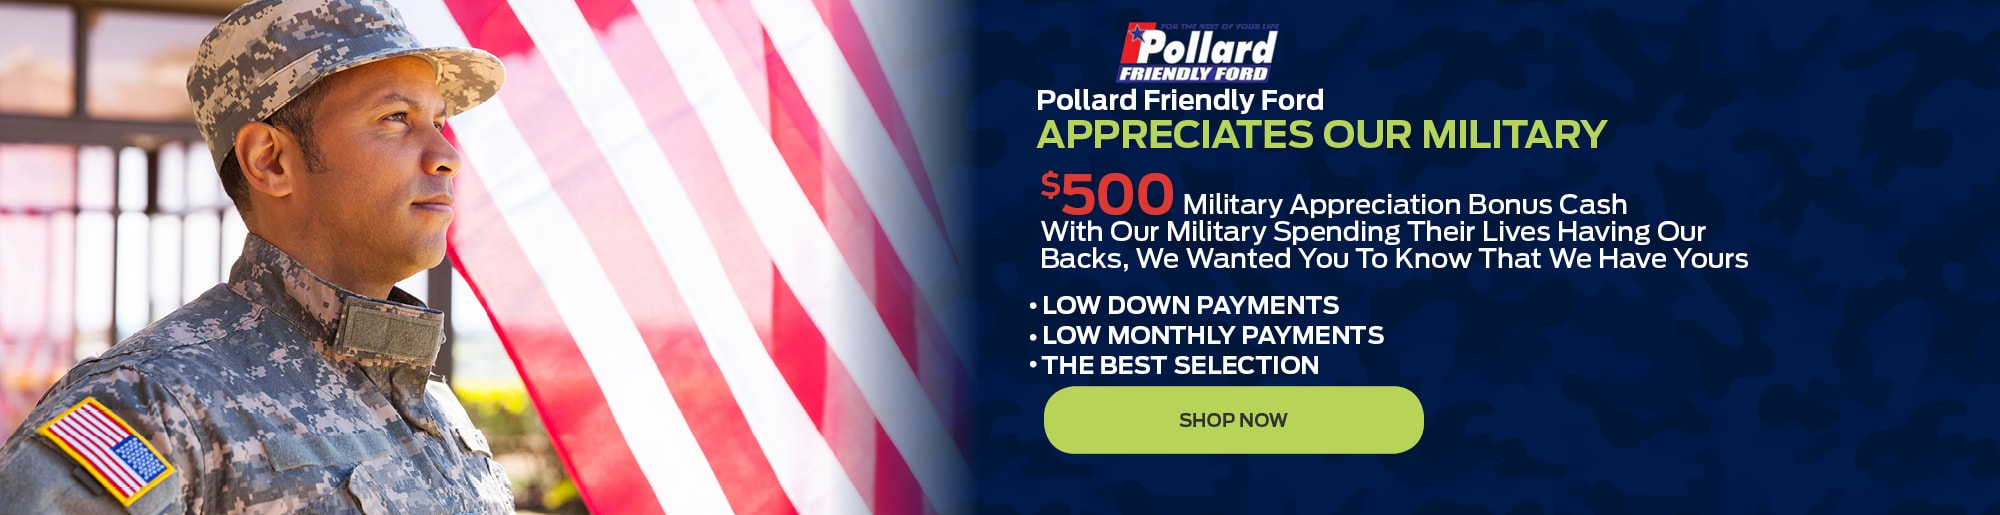 Pollard Friendly Ford Co | Ford Dealership in Lubbock TX